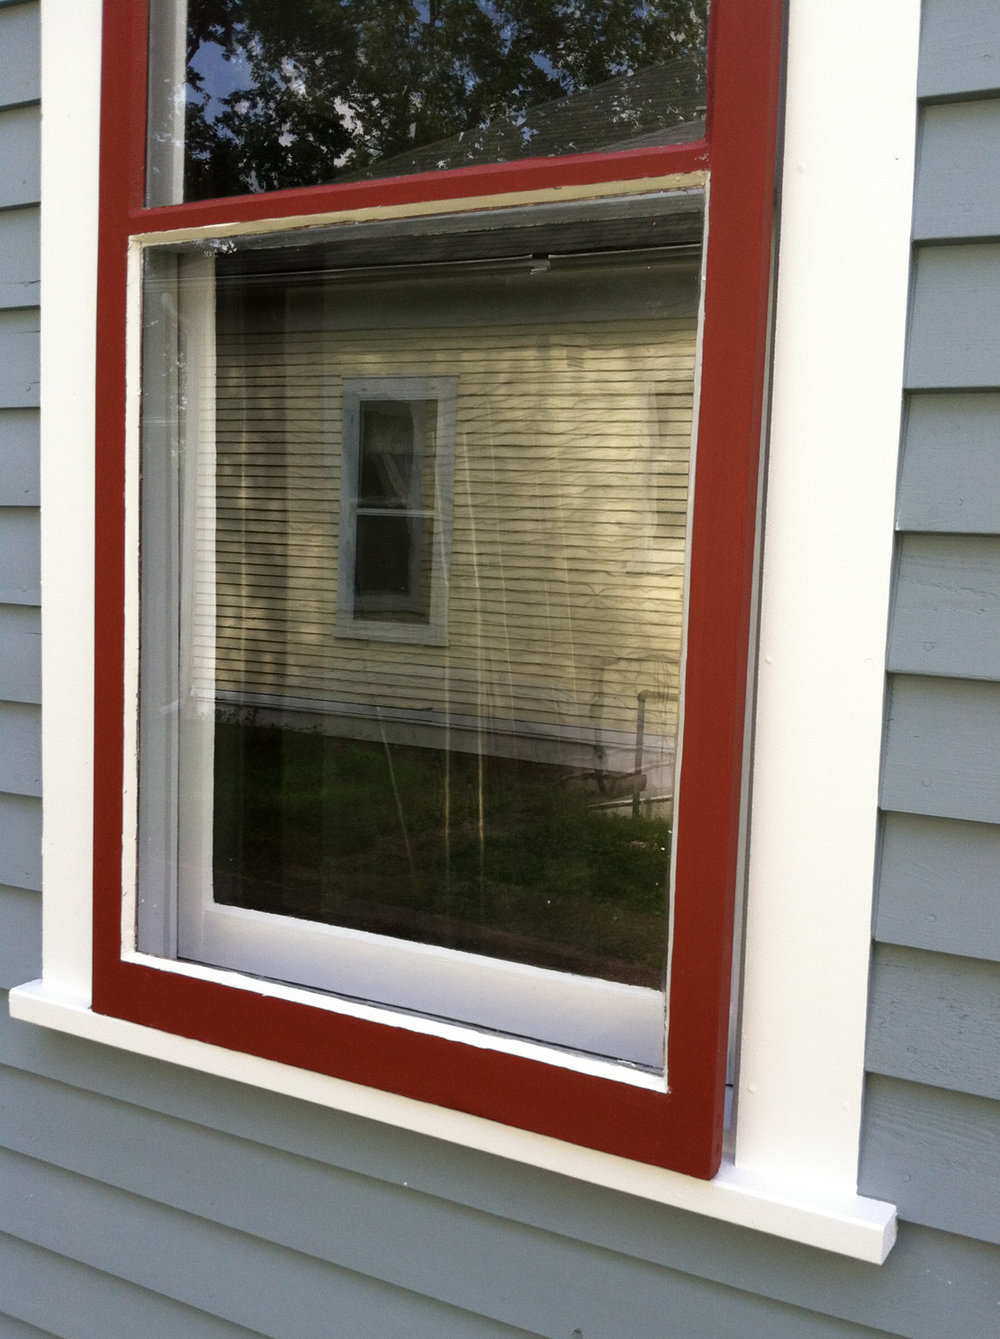 knoxville-tn-glass-replacement-windows-2.jpg